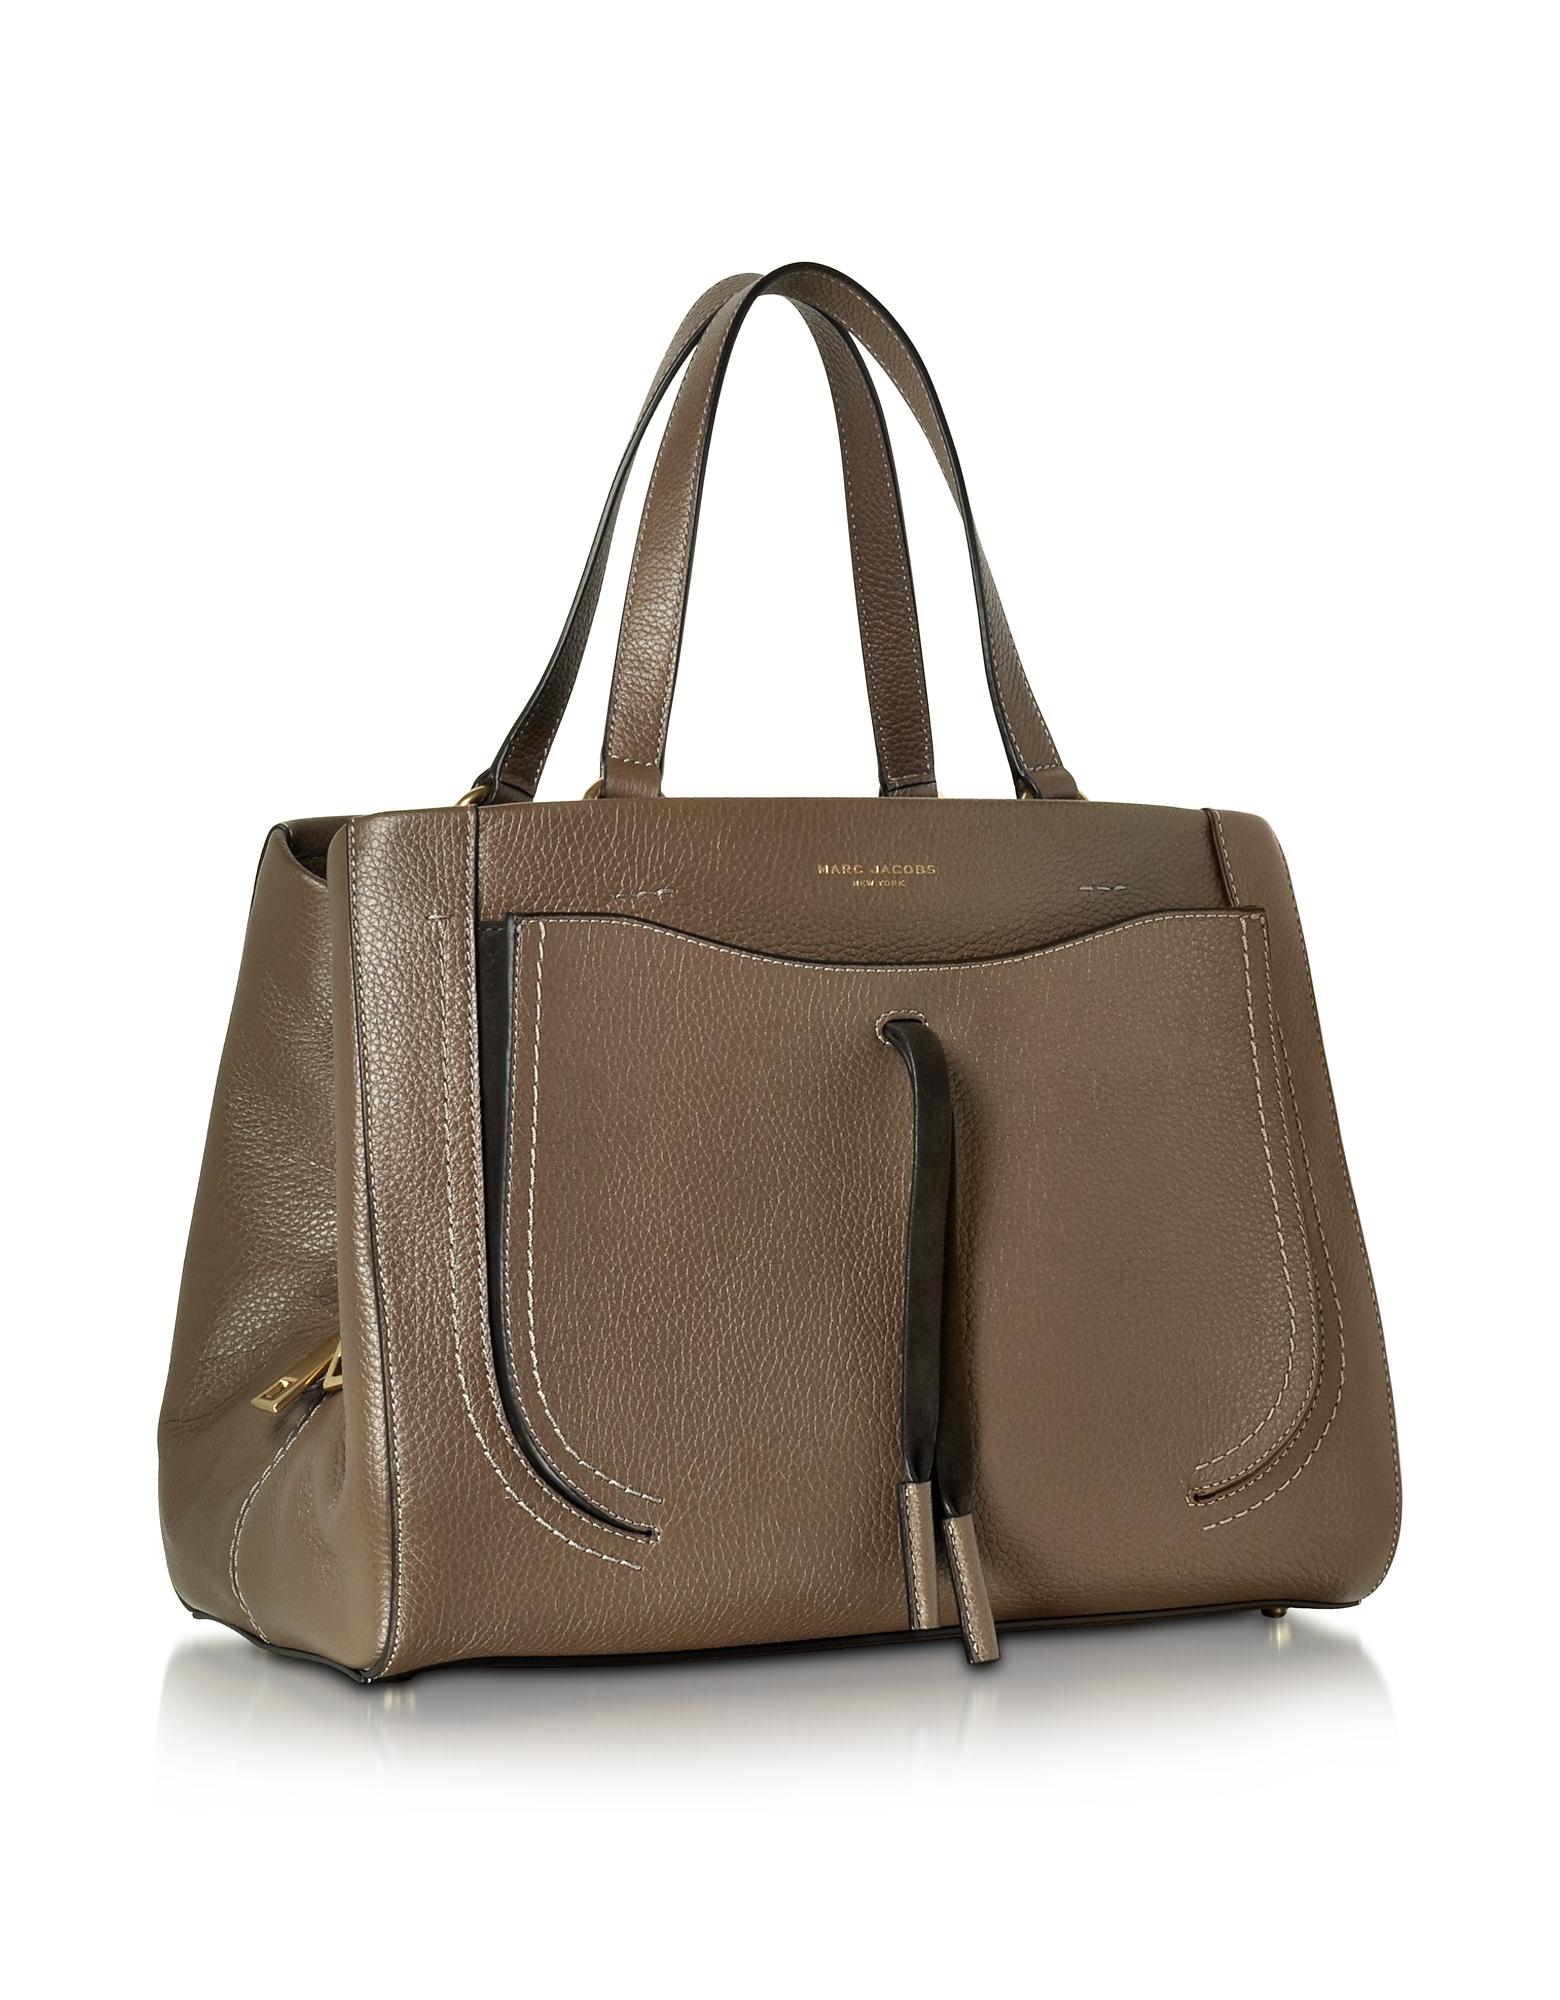 d44e181a6483 Lyst - Marc Jacobs Maverick Teak Leather Tote Bag in Brown